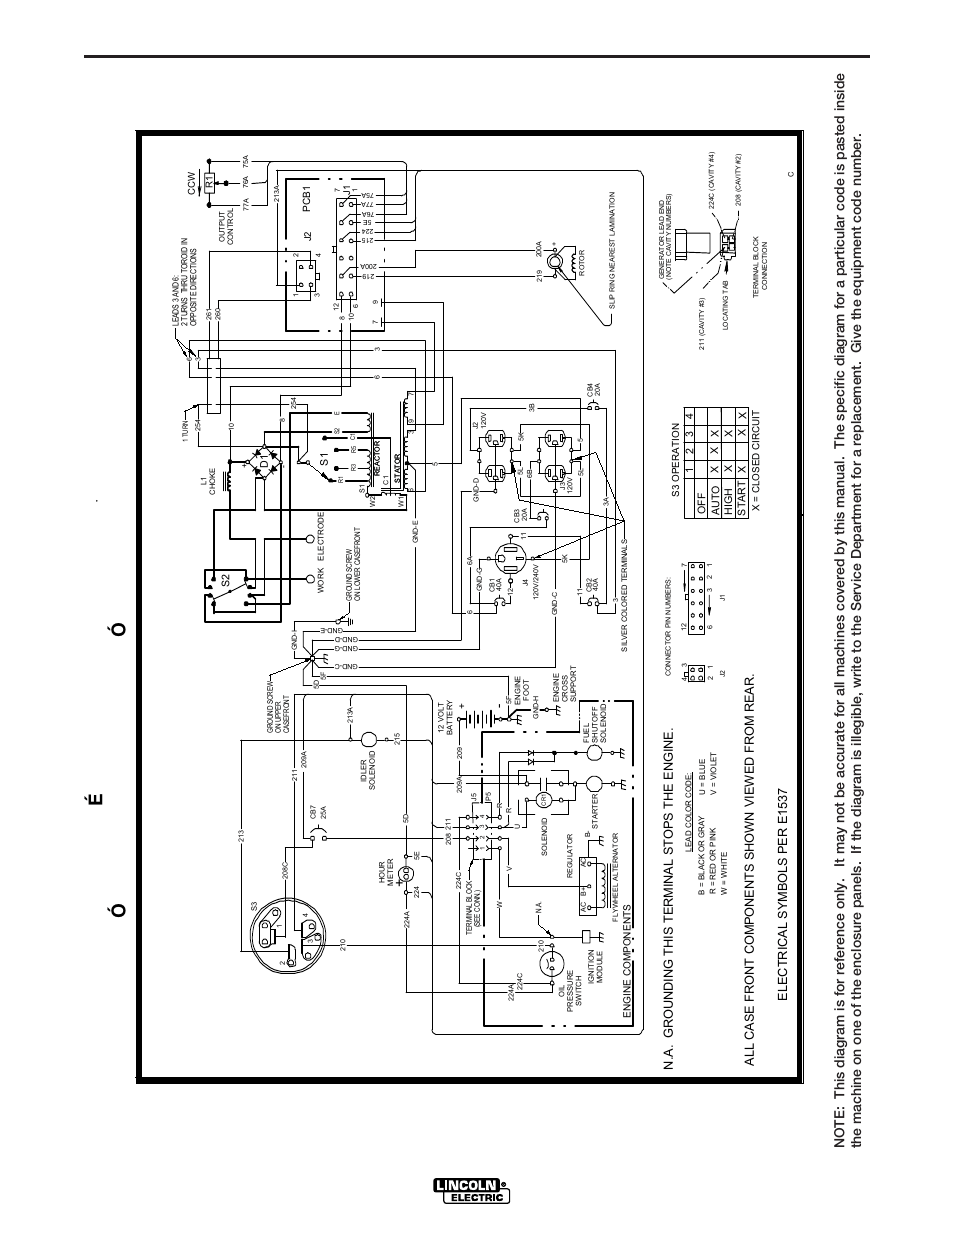 Nissan Altima Radio Wiring Diagram Moreover Subaru Forester Radio